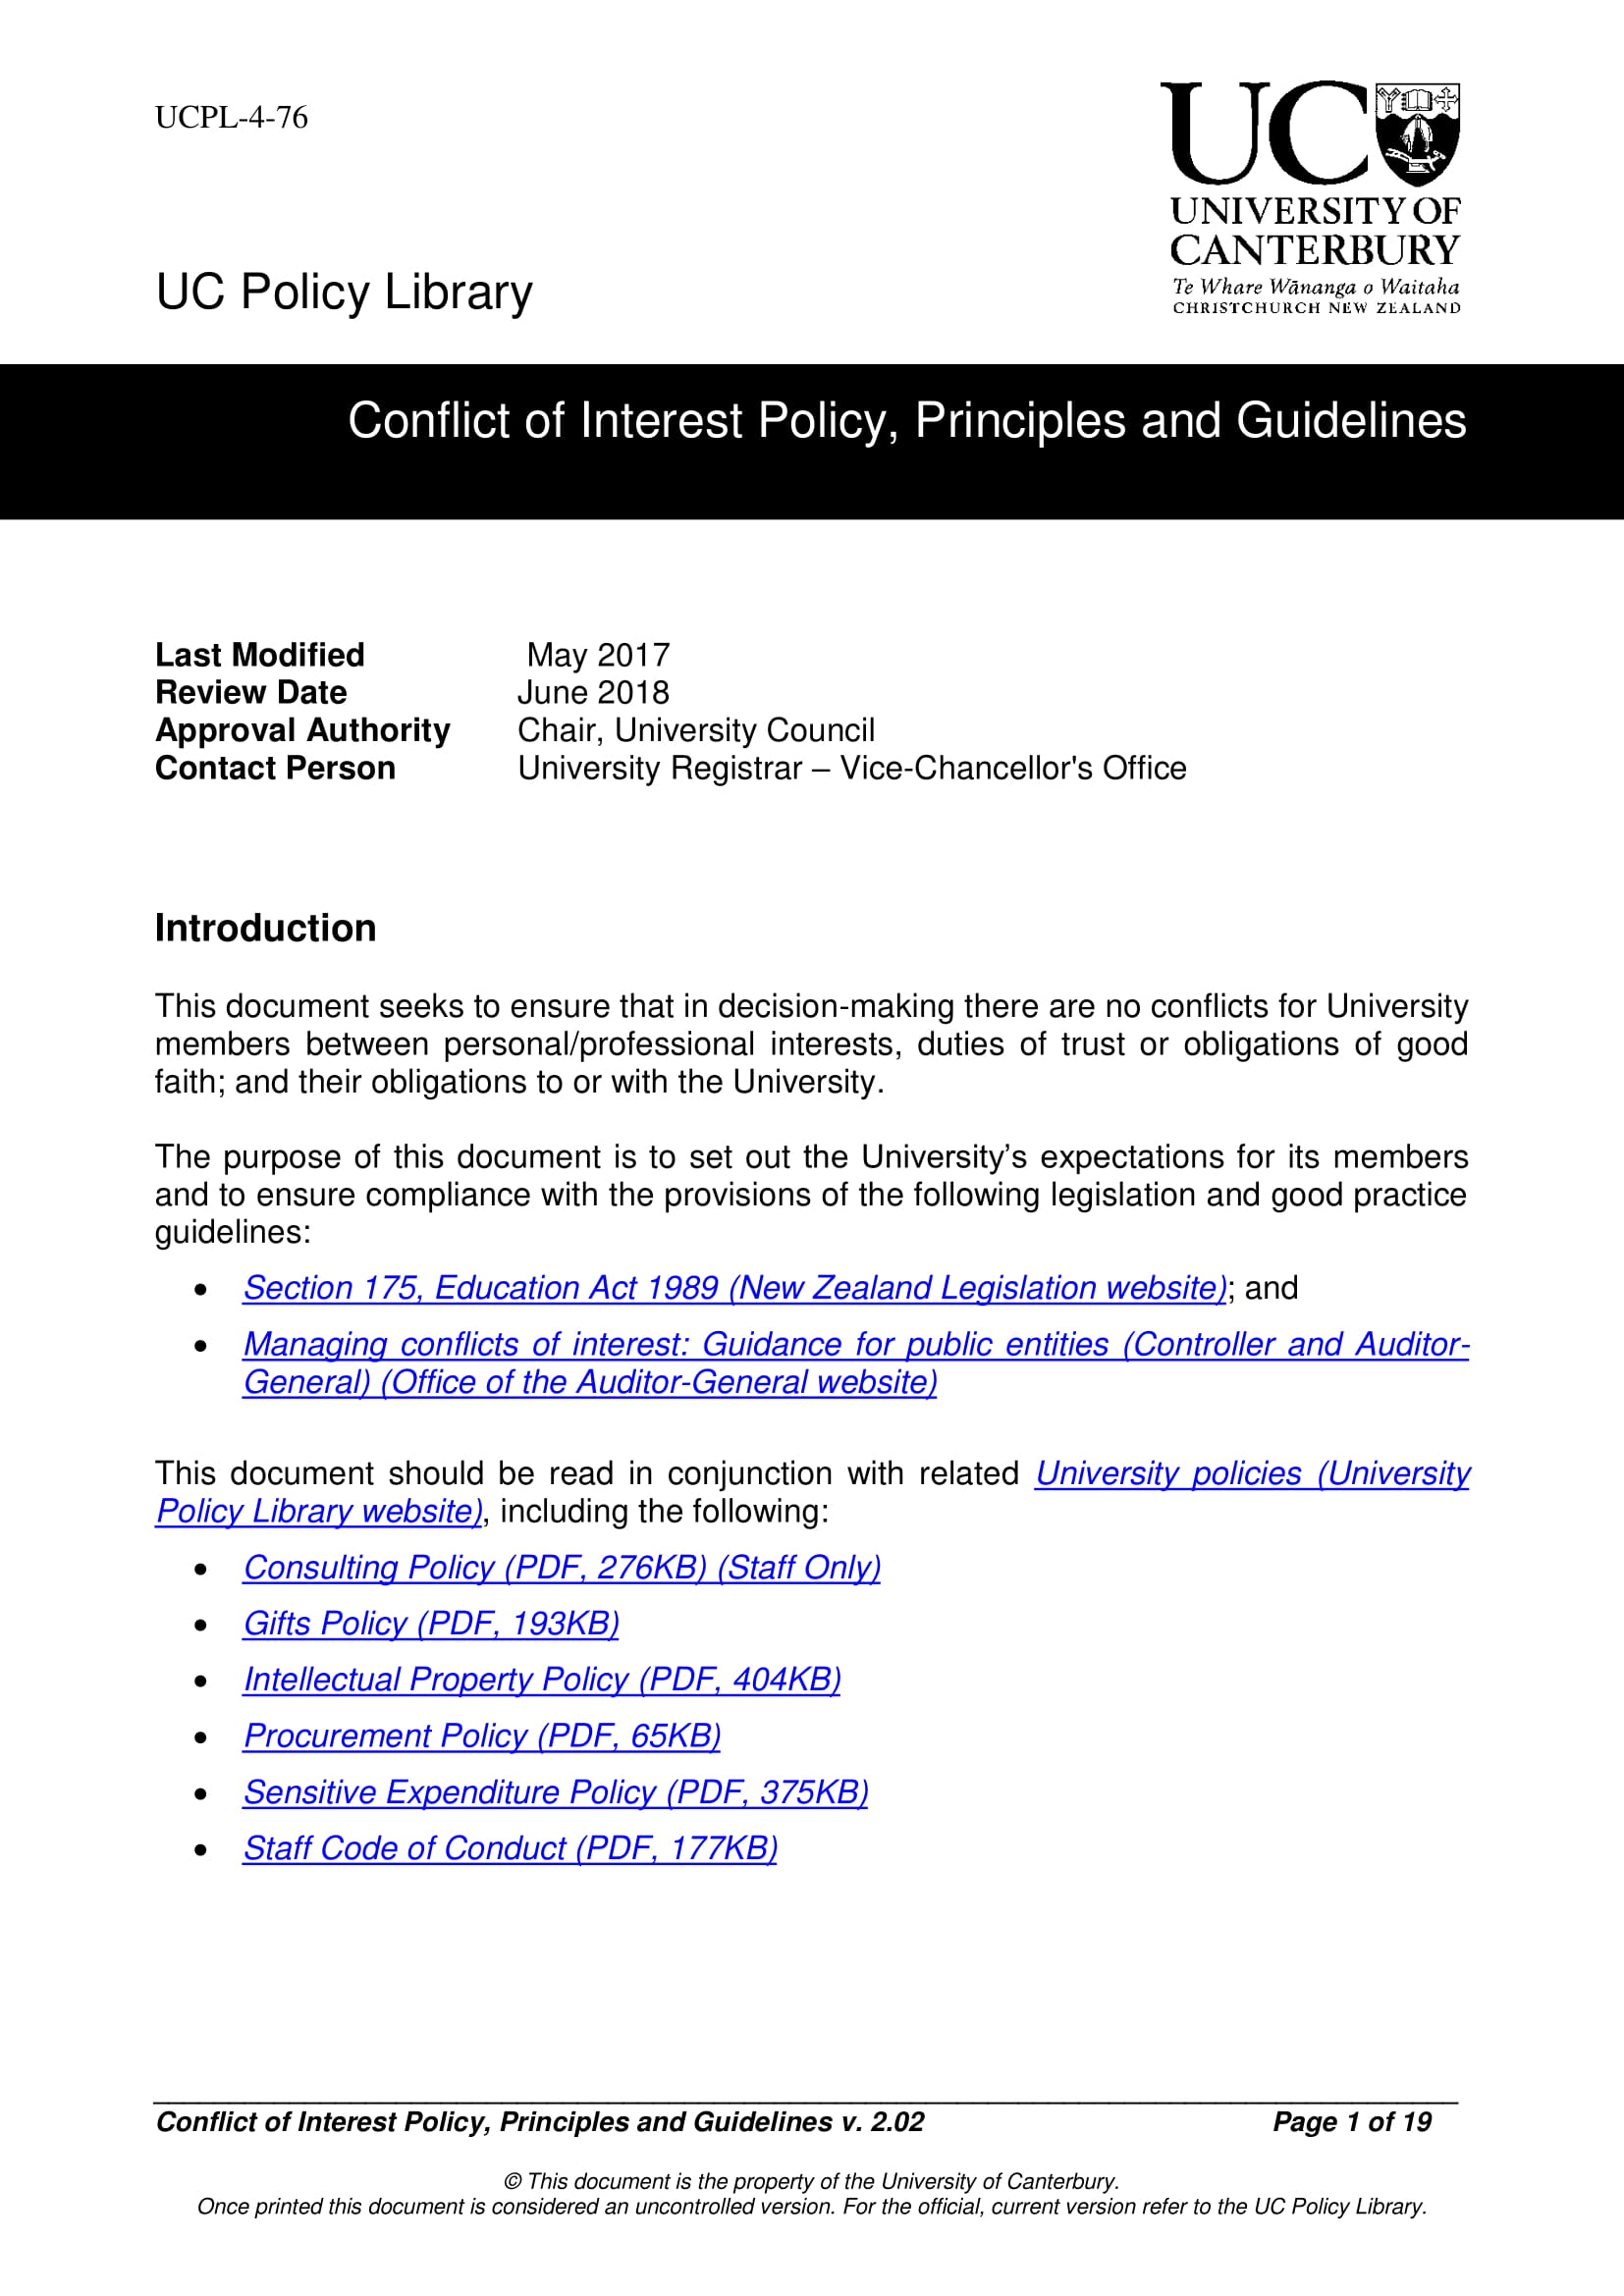 principles and guidelines example conflict of interest policy principles and guidelines 01